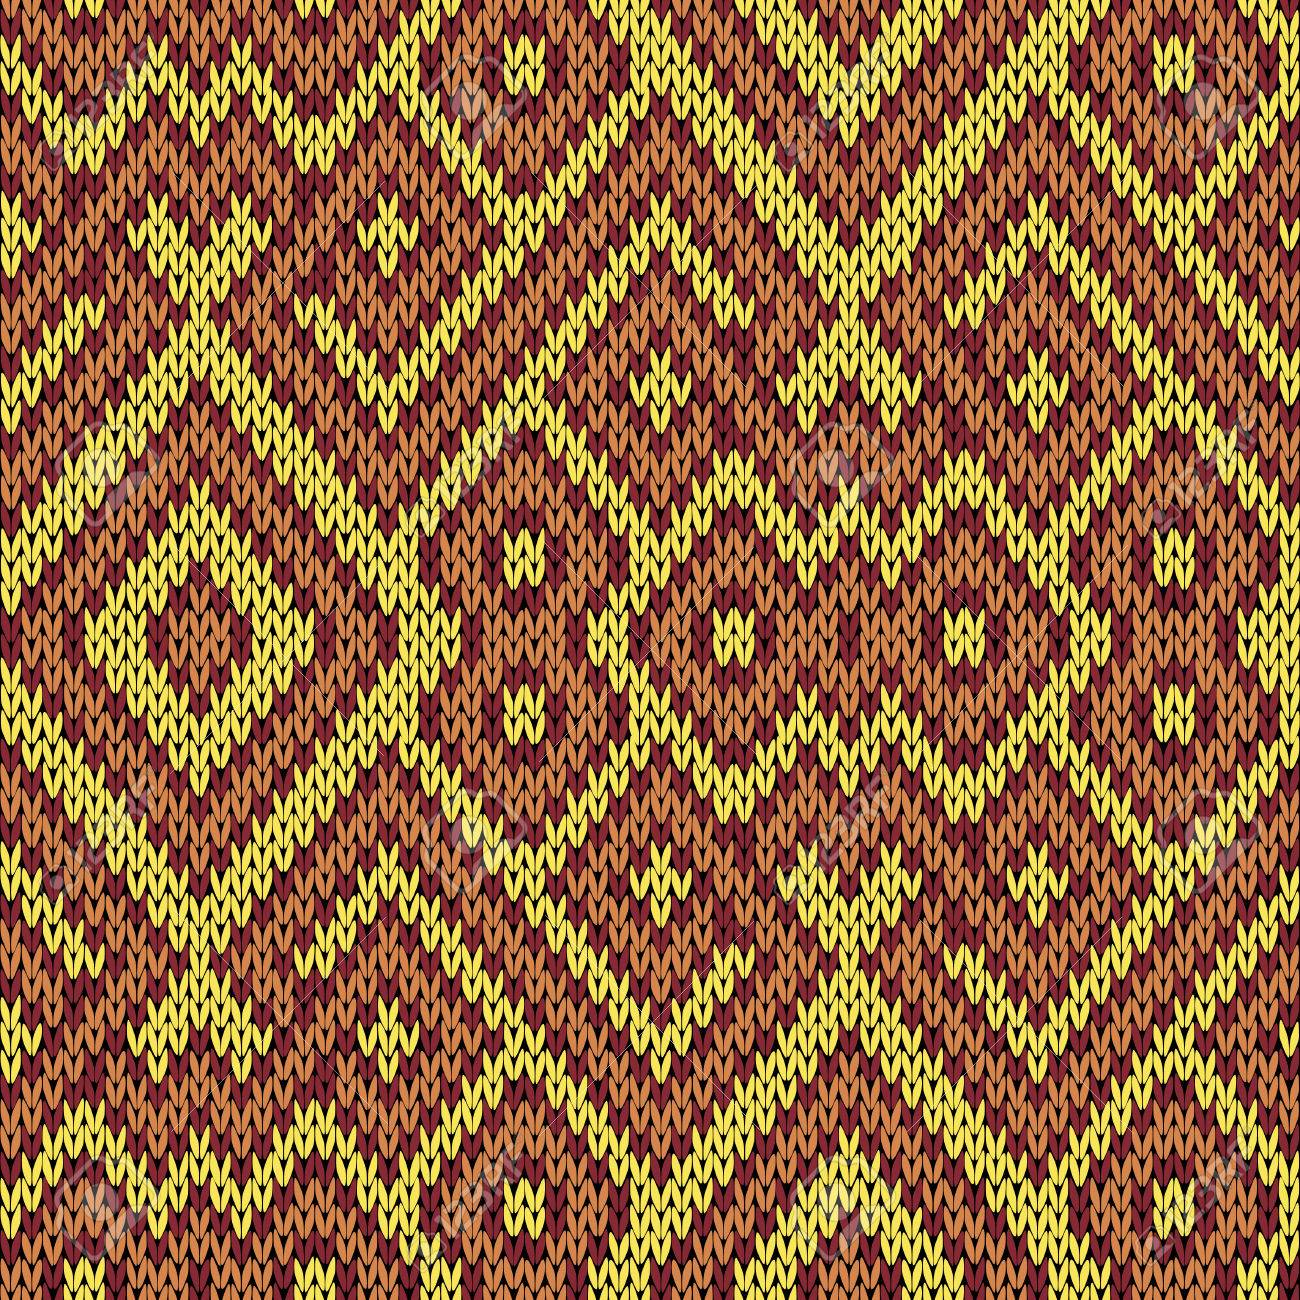 Knitting Seamless Vector Pattern As A Fabric Texture In Yellow Claret And Brown Hues Stock